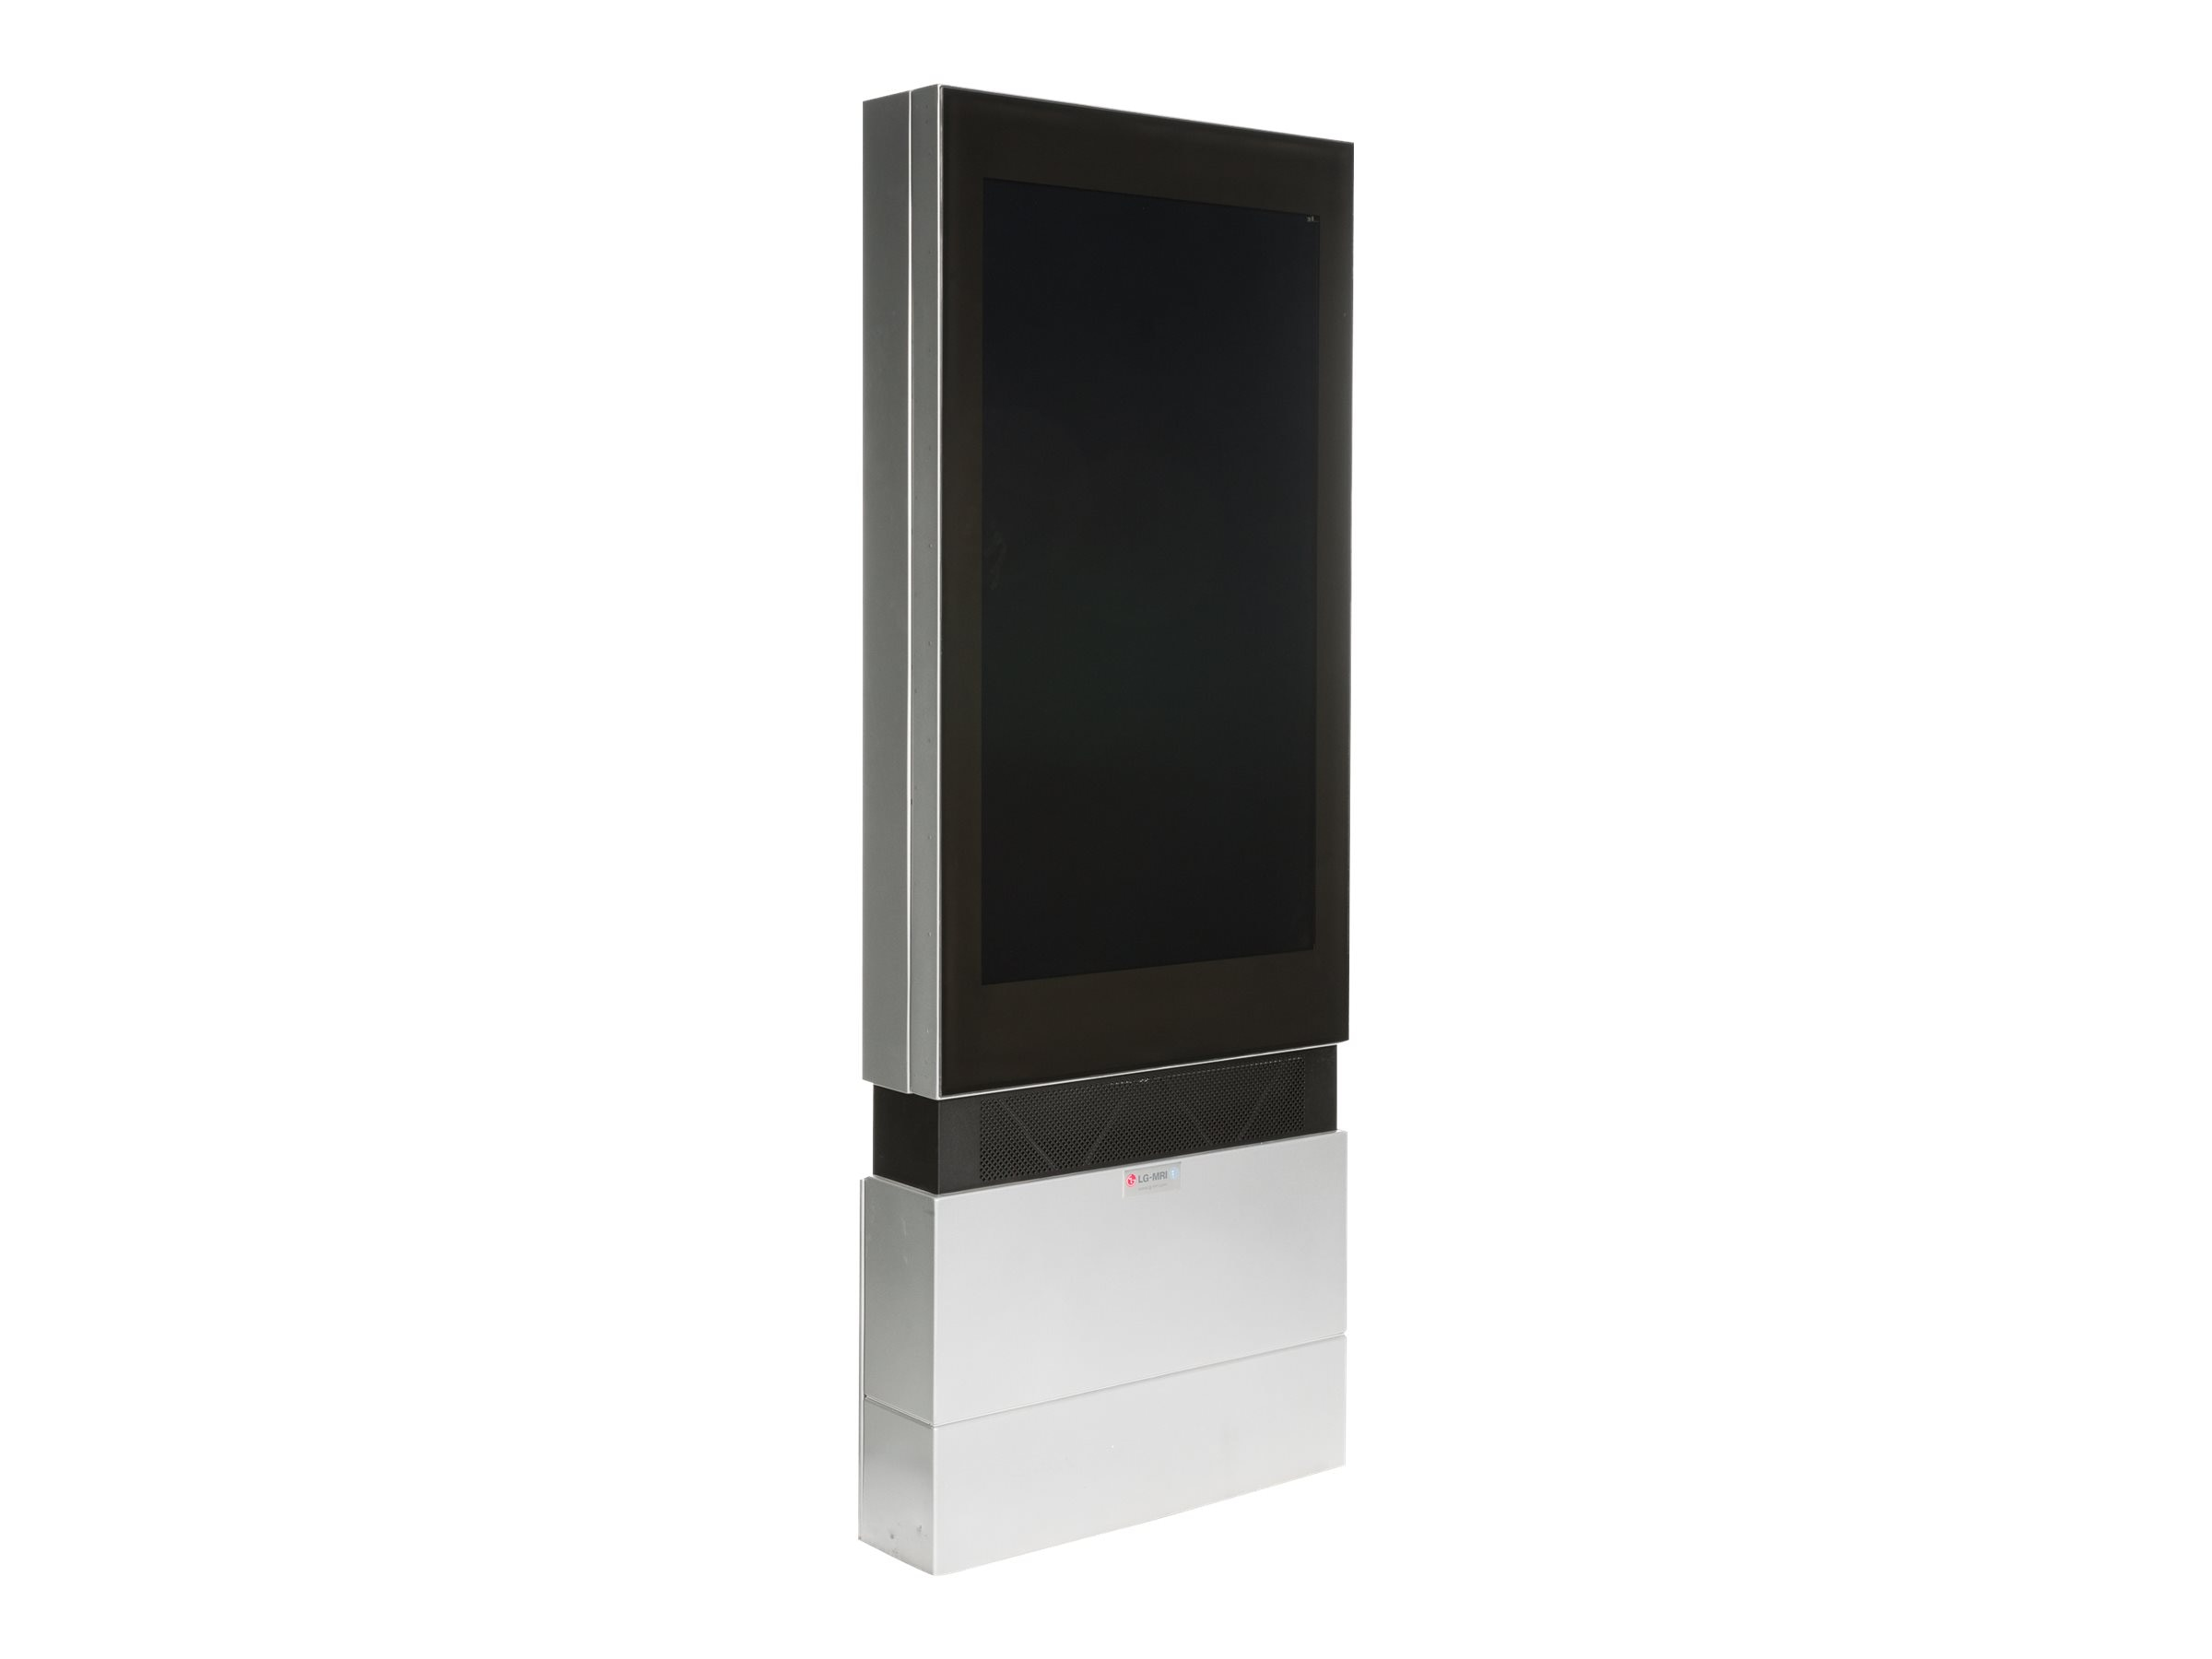 LG 84 BoldVu LED-LCD Outdoor Display, Landscape, BV84LSFAS0.AUS